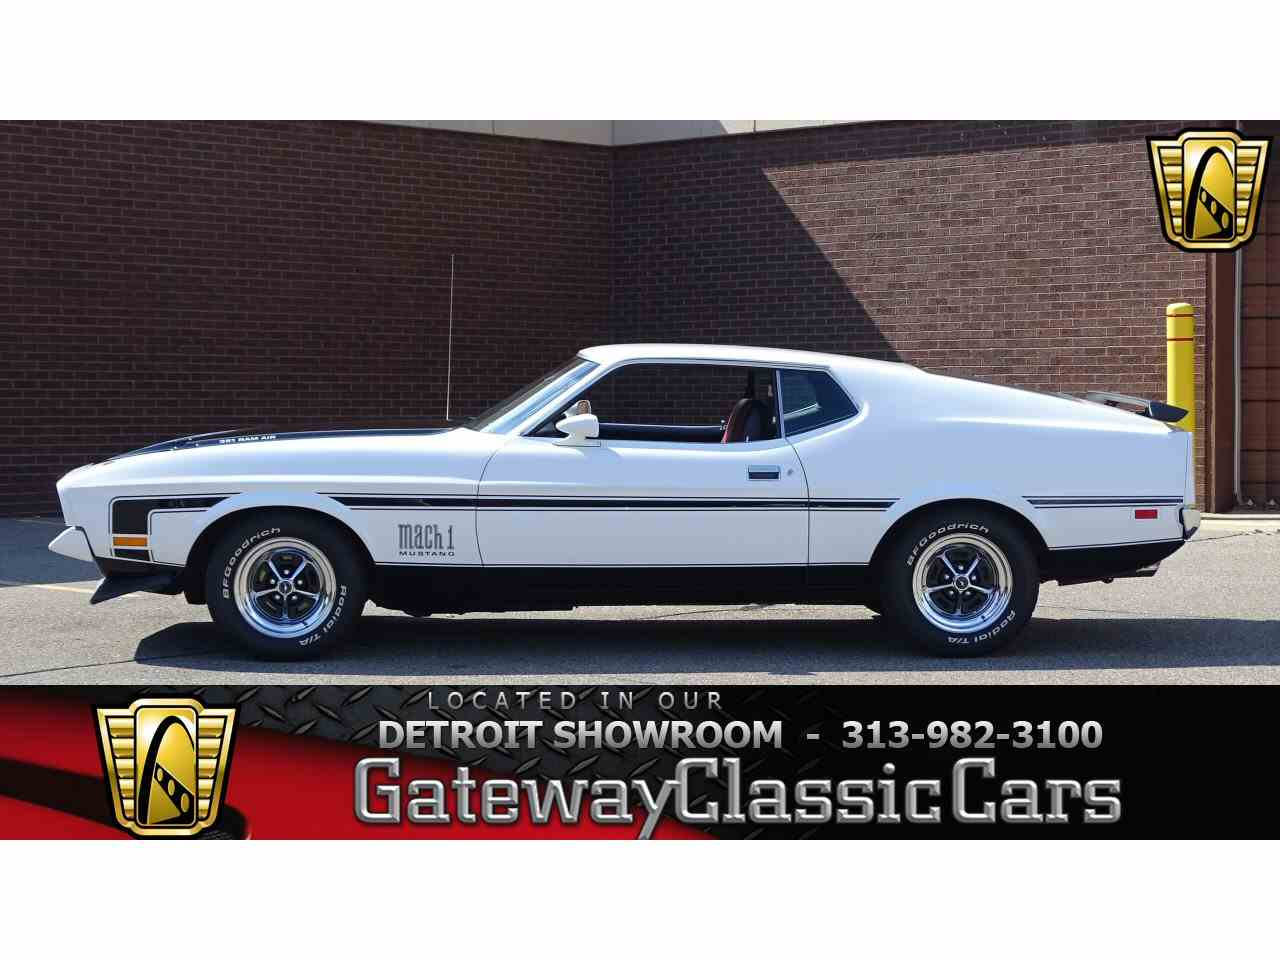 Large Picture of 1971 Ford Mustang located in Michigan - $34,995.00 - LVDW